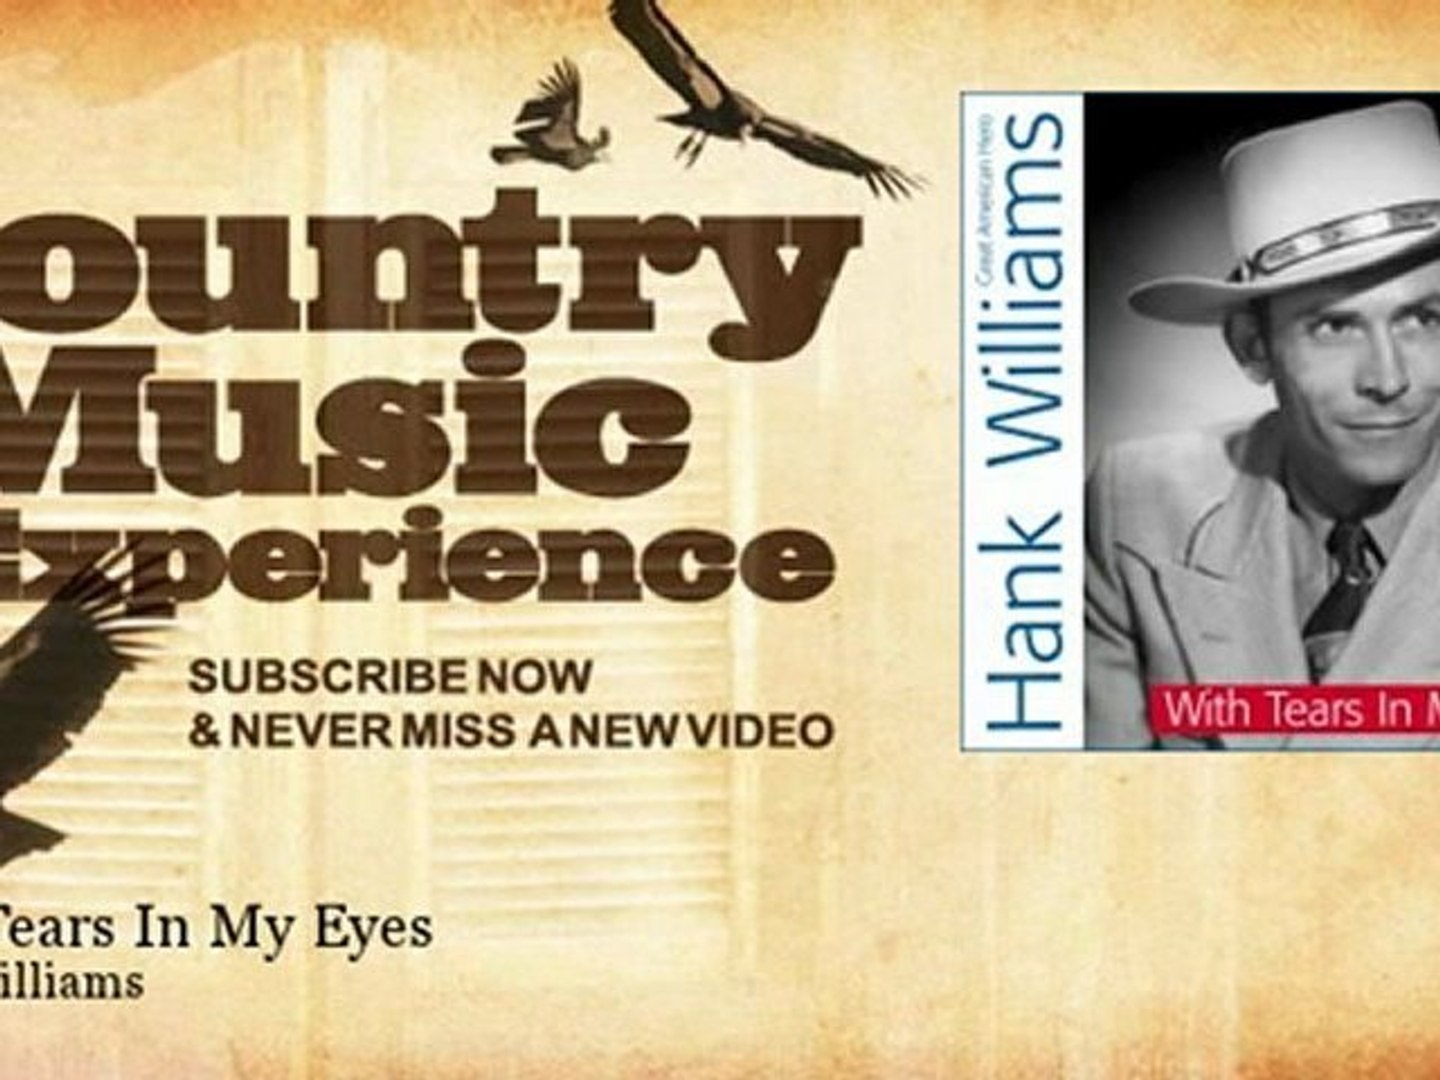 Hank Williams - With Tears In My Eyes - Country Music Experience